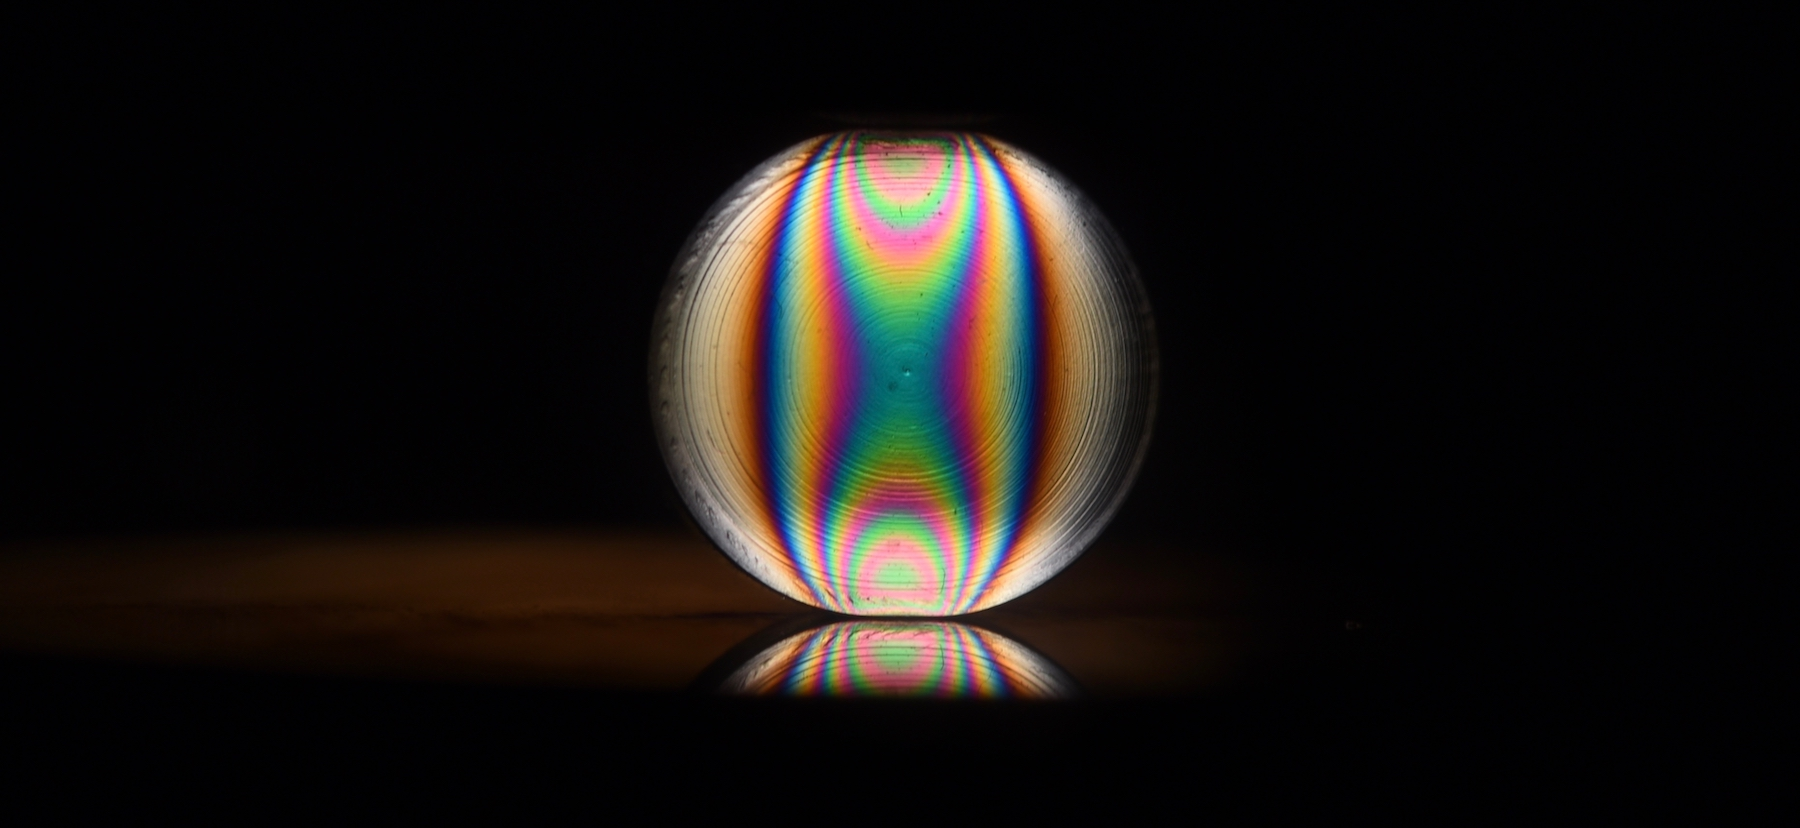 Fringes in a photoelastic particle when it was squeezed diametrically.